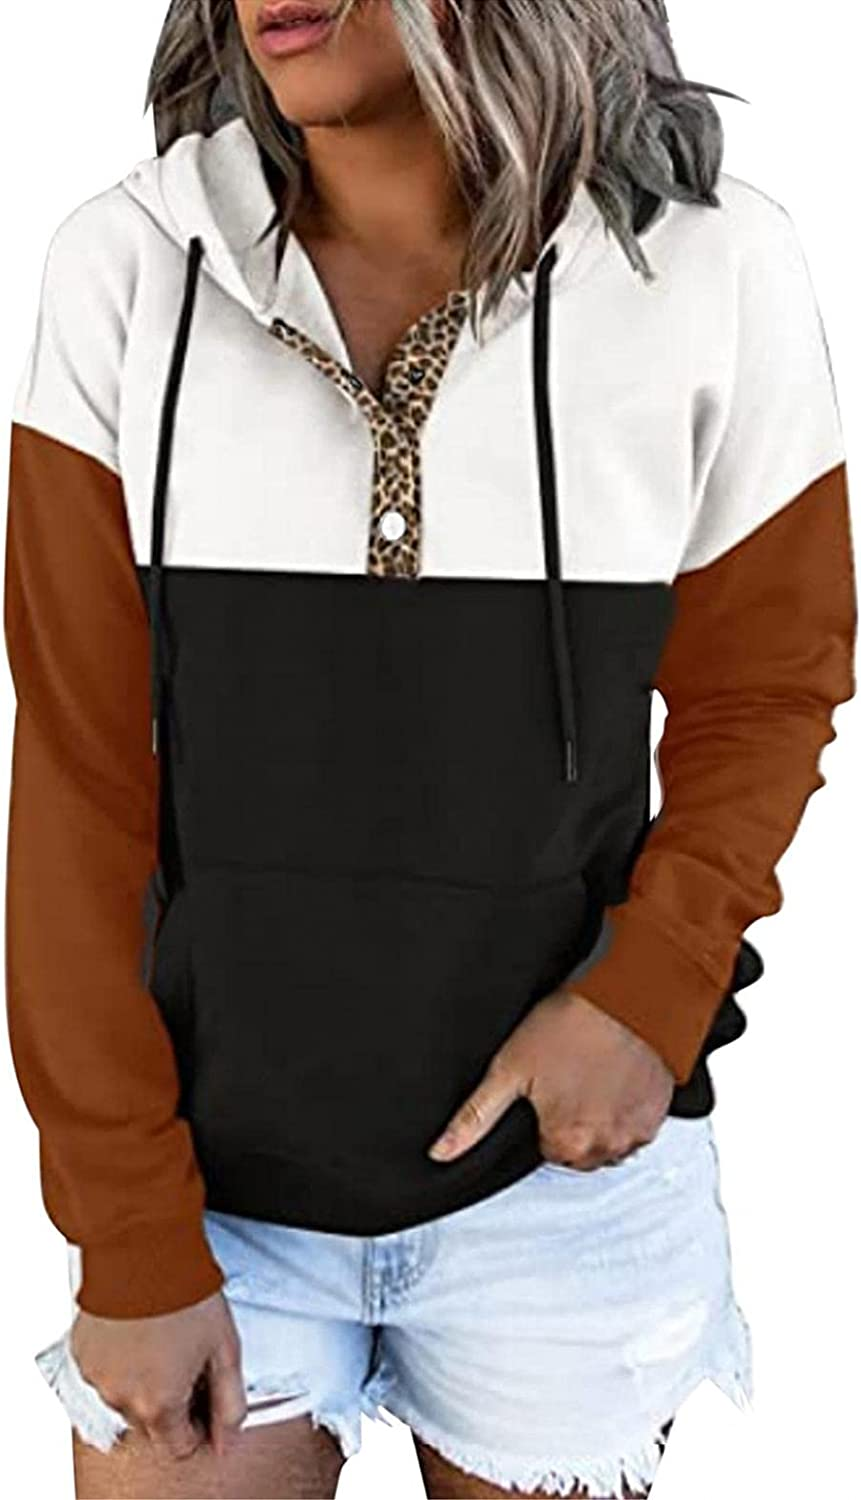 AODONG Hoodies for Women Womens Drawstring shipfree Casual Pullover All stores are sold Hoode